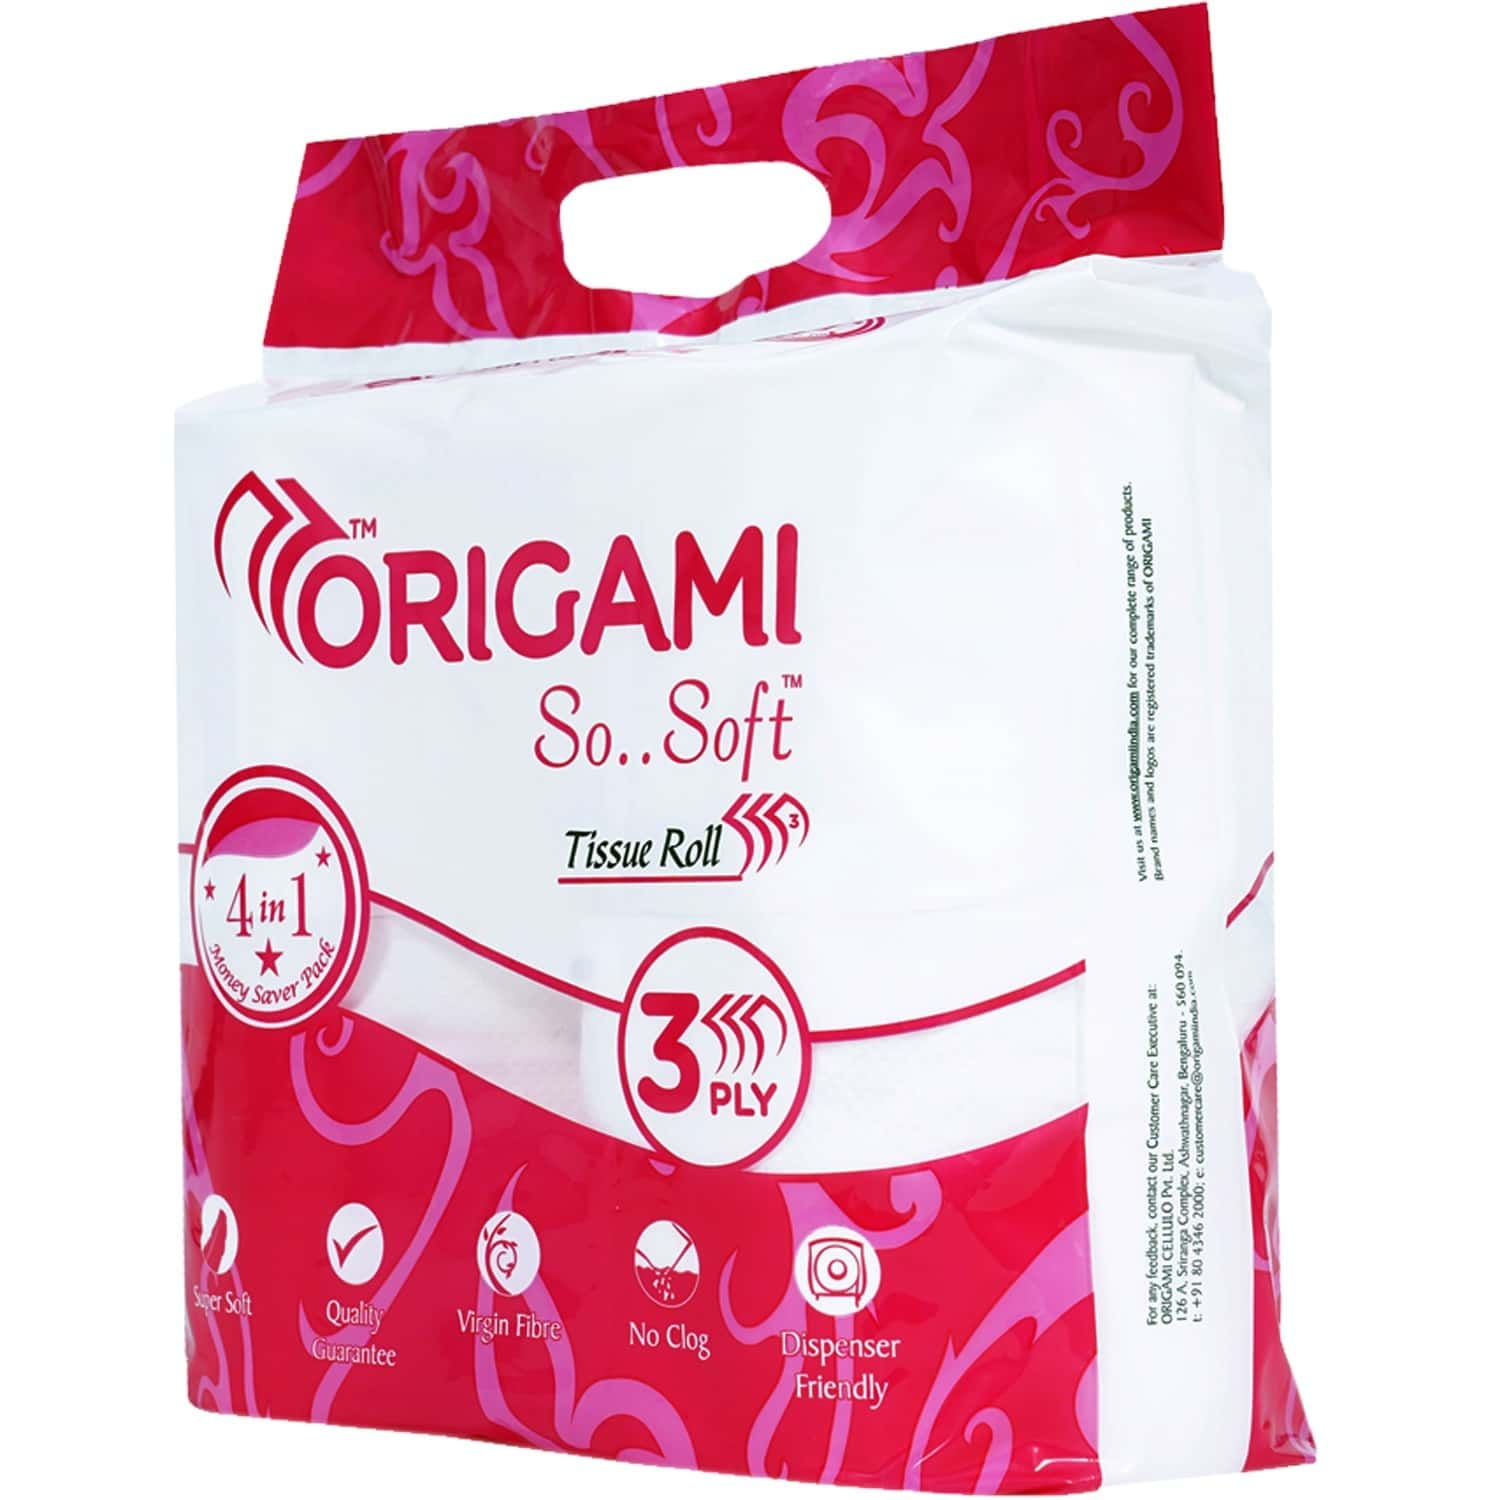 Origami So Soft Tissue Roll 4in1, 340 Pulls, 3 Ply